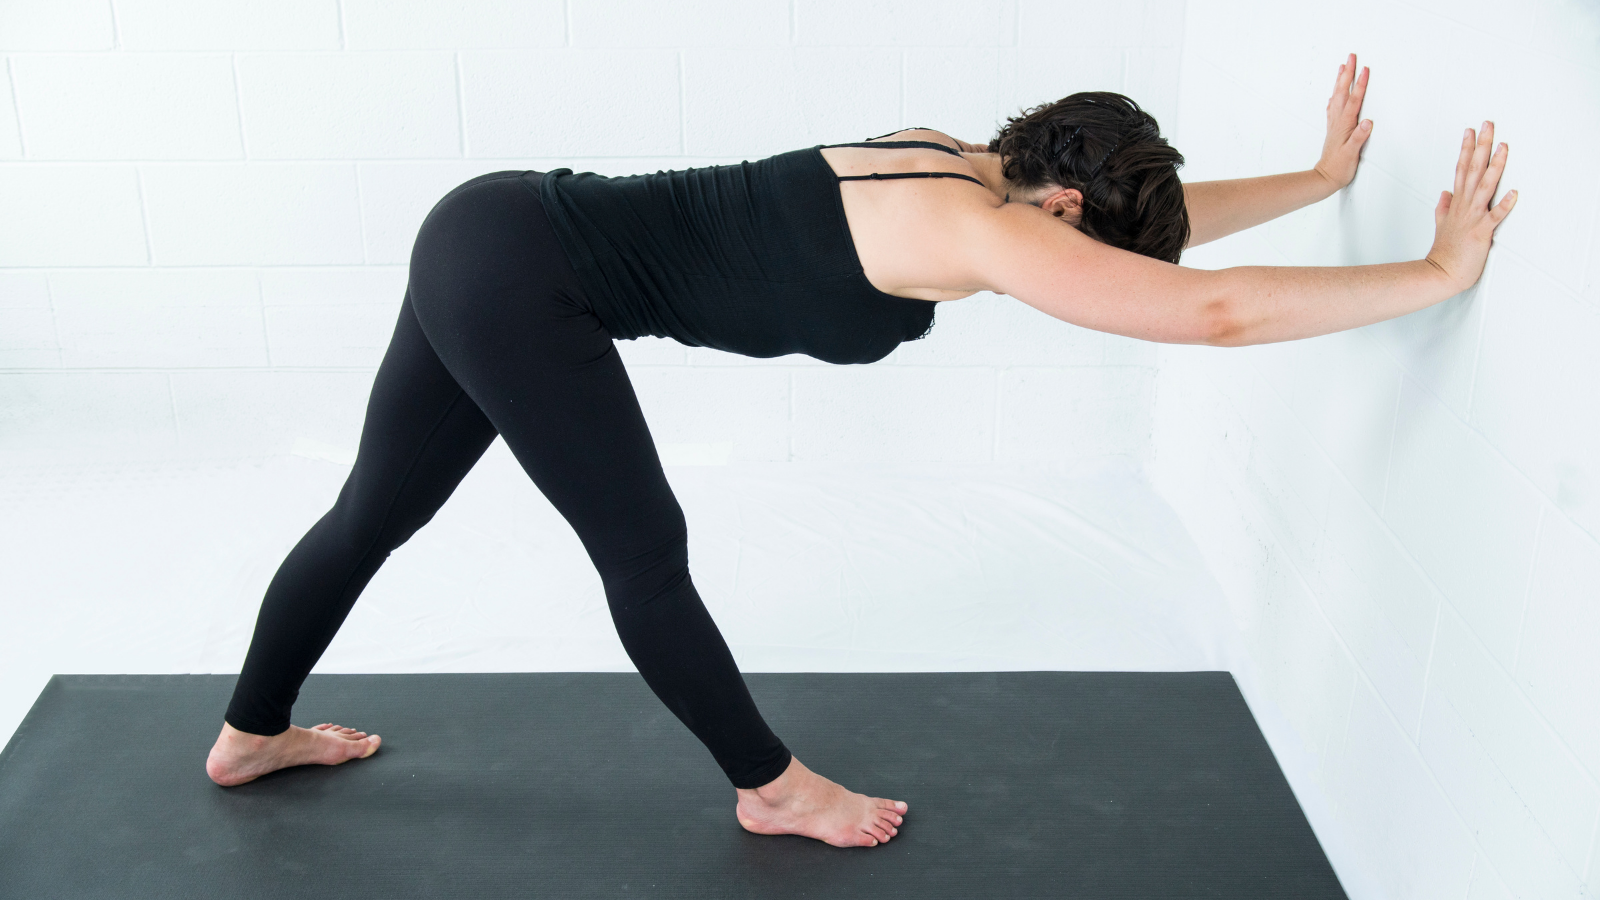 Yoga student practicing Pyramid Pose (Parsvottanasana) at the wall to adapt the pose to her body